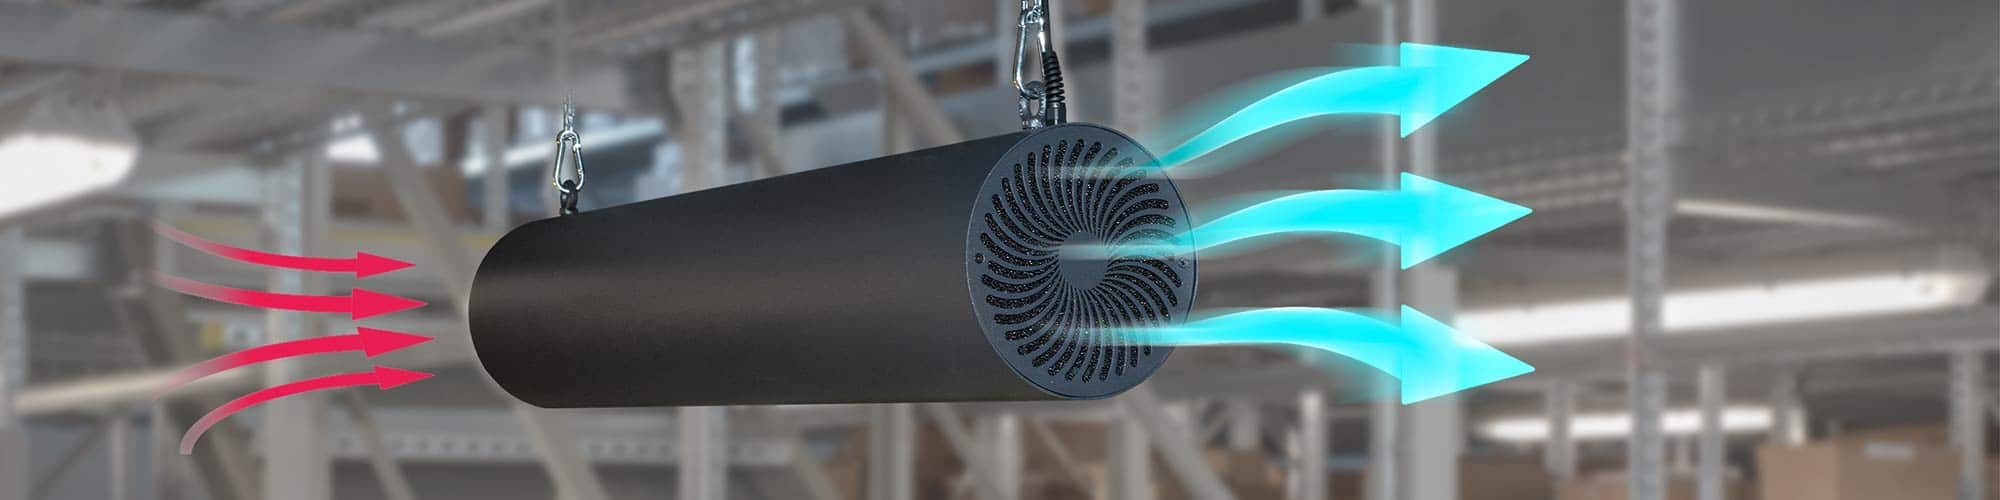 AP-AS UVETTA Suspended UV Air Disinfection System